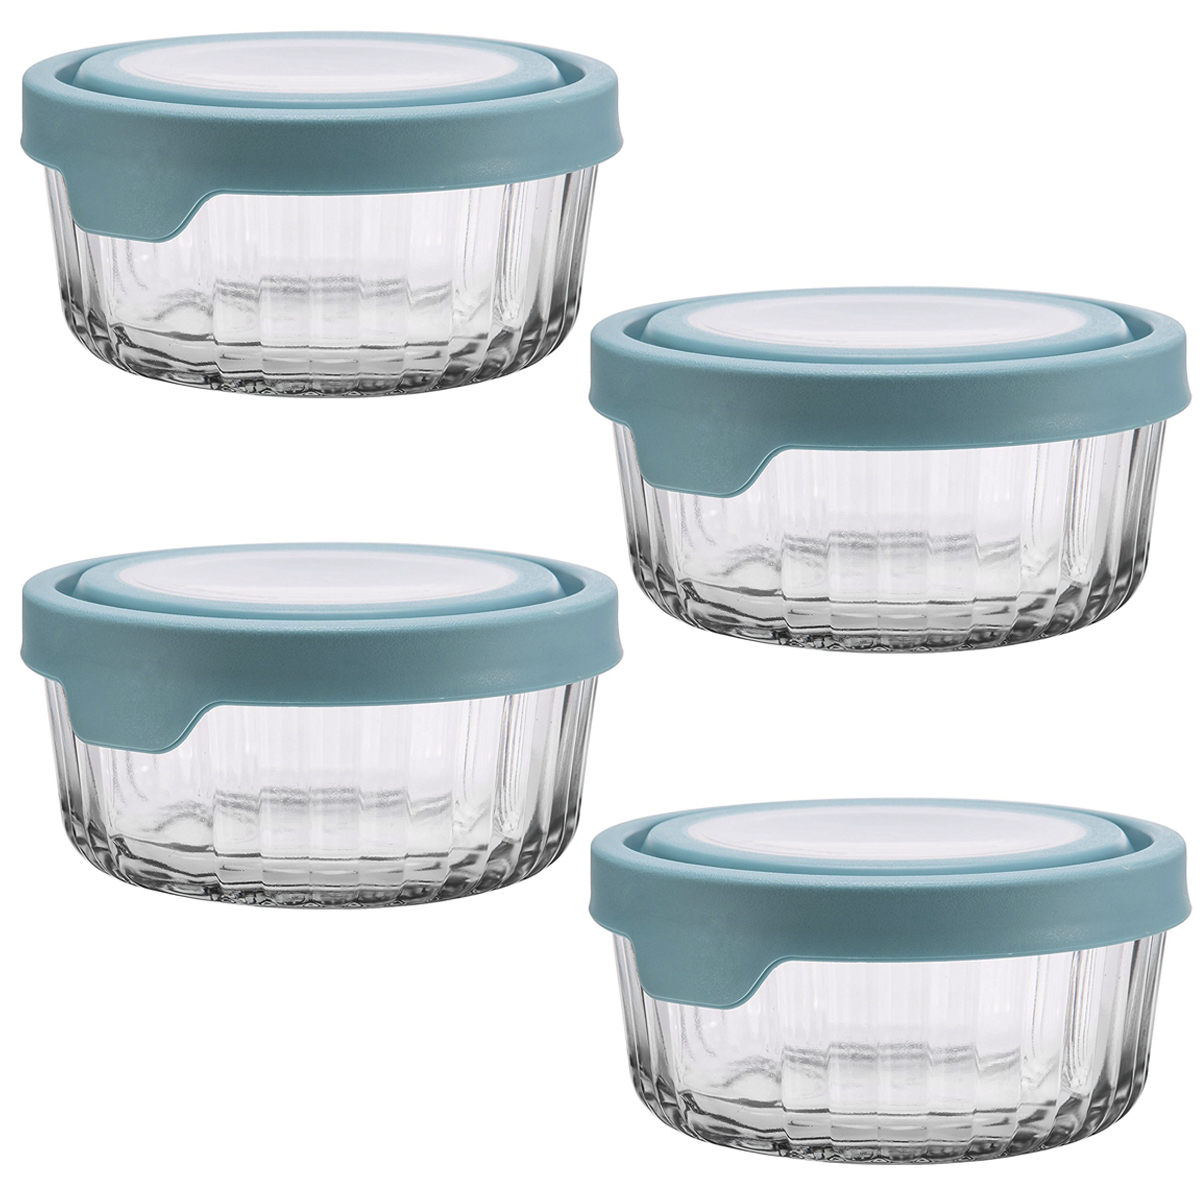 Anchor Hocking8pc 4 Cup Round Glass True Seal Food Storage